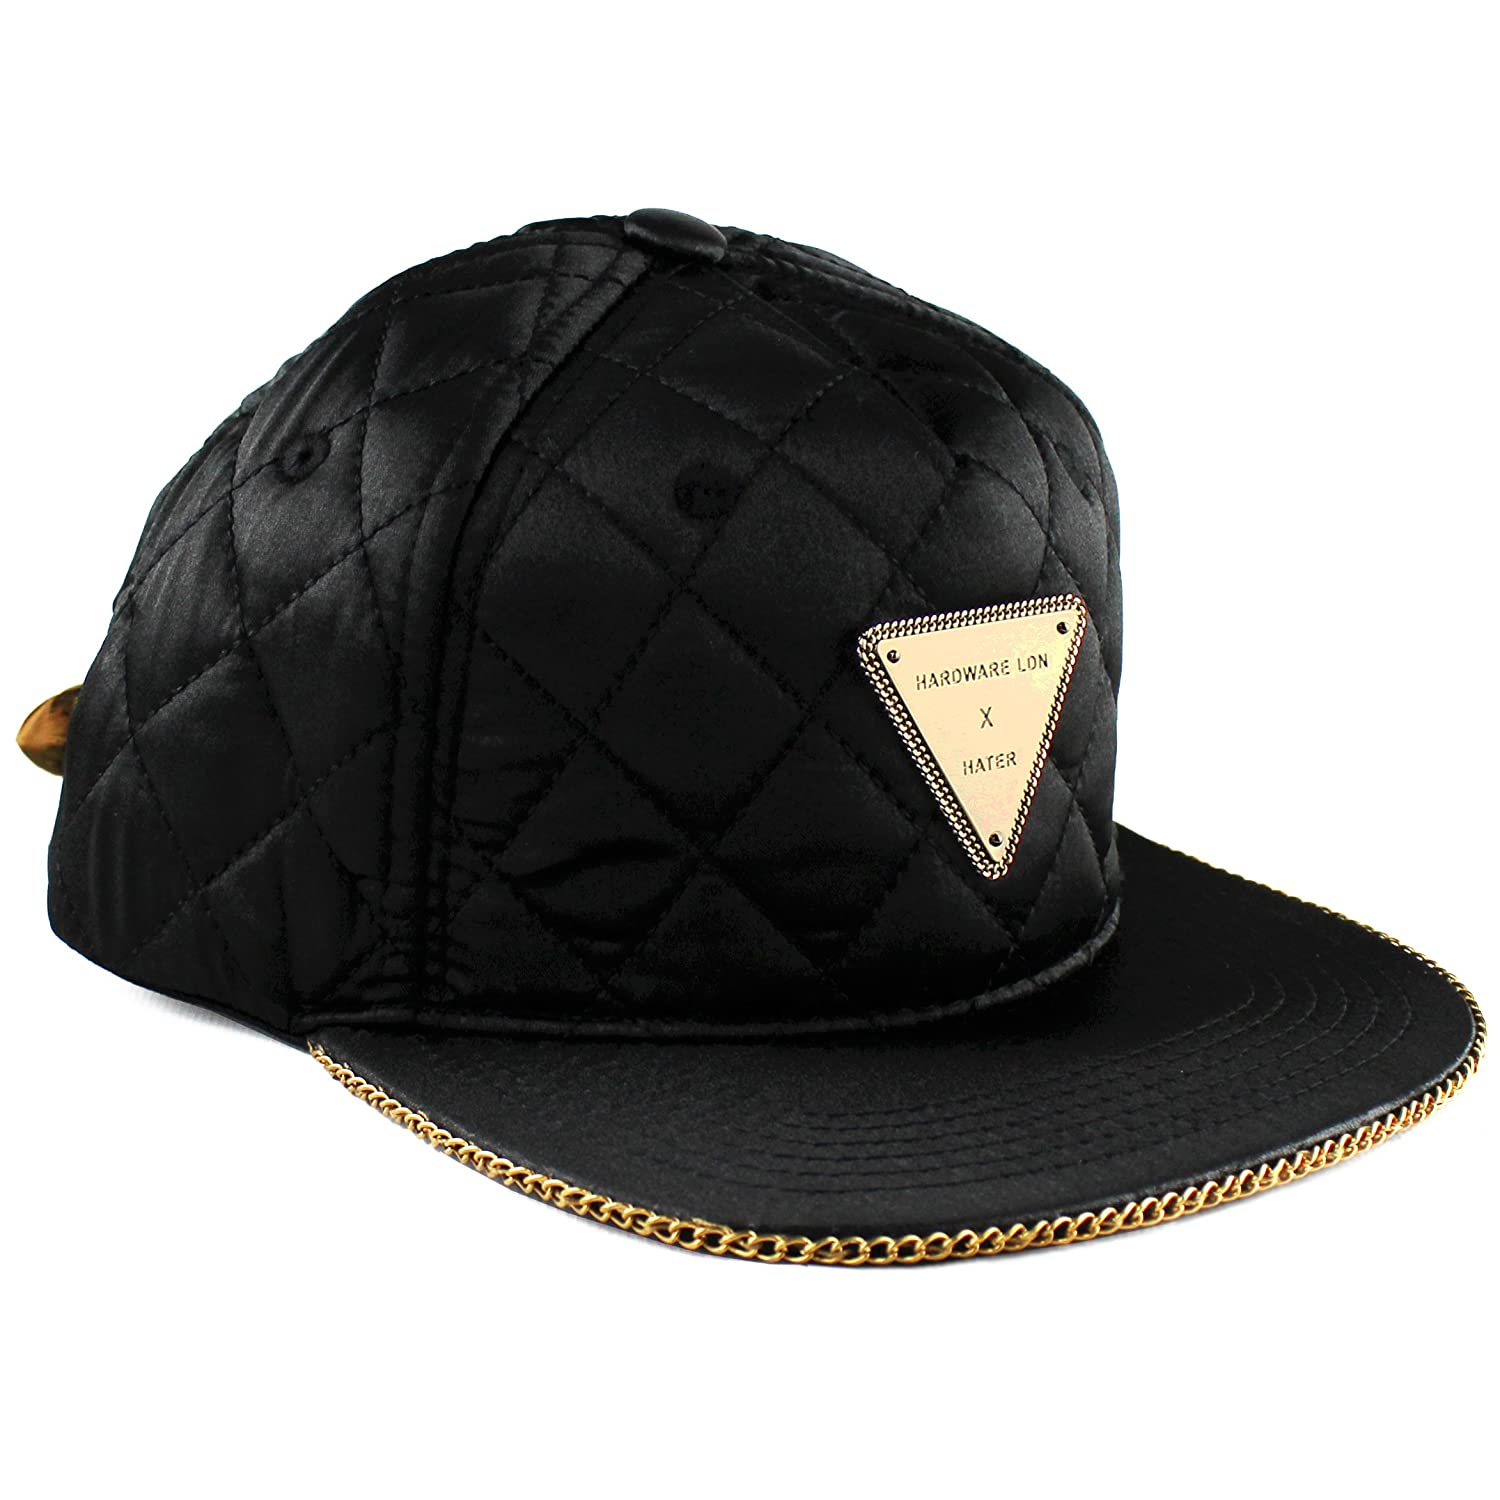 ... promo code for hater quilted gold chain snapback hat at amazon mens  clothing store 1a672 97f23 777aa18f2cf